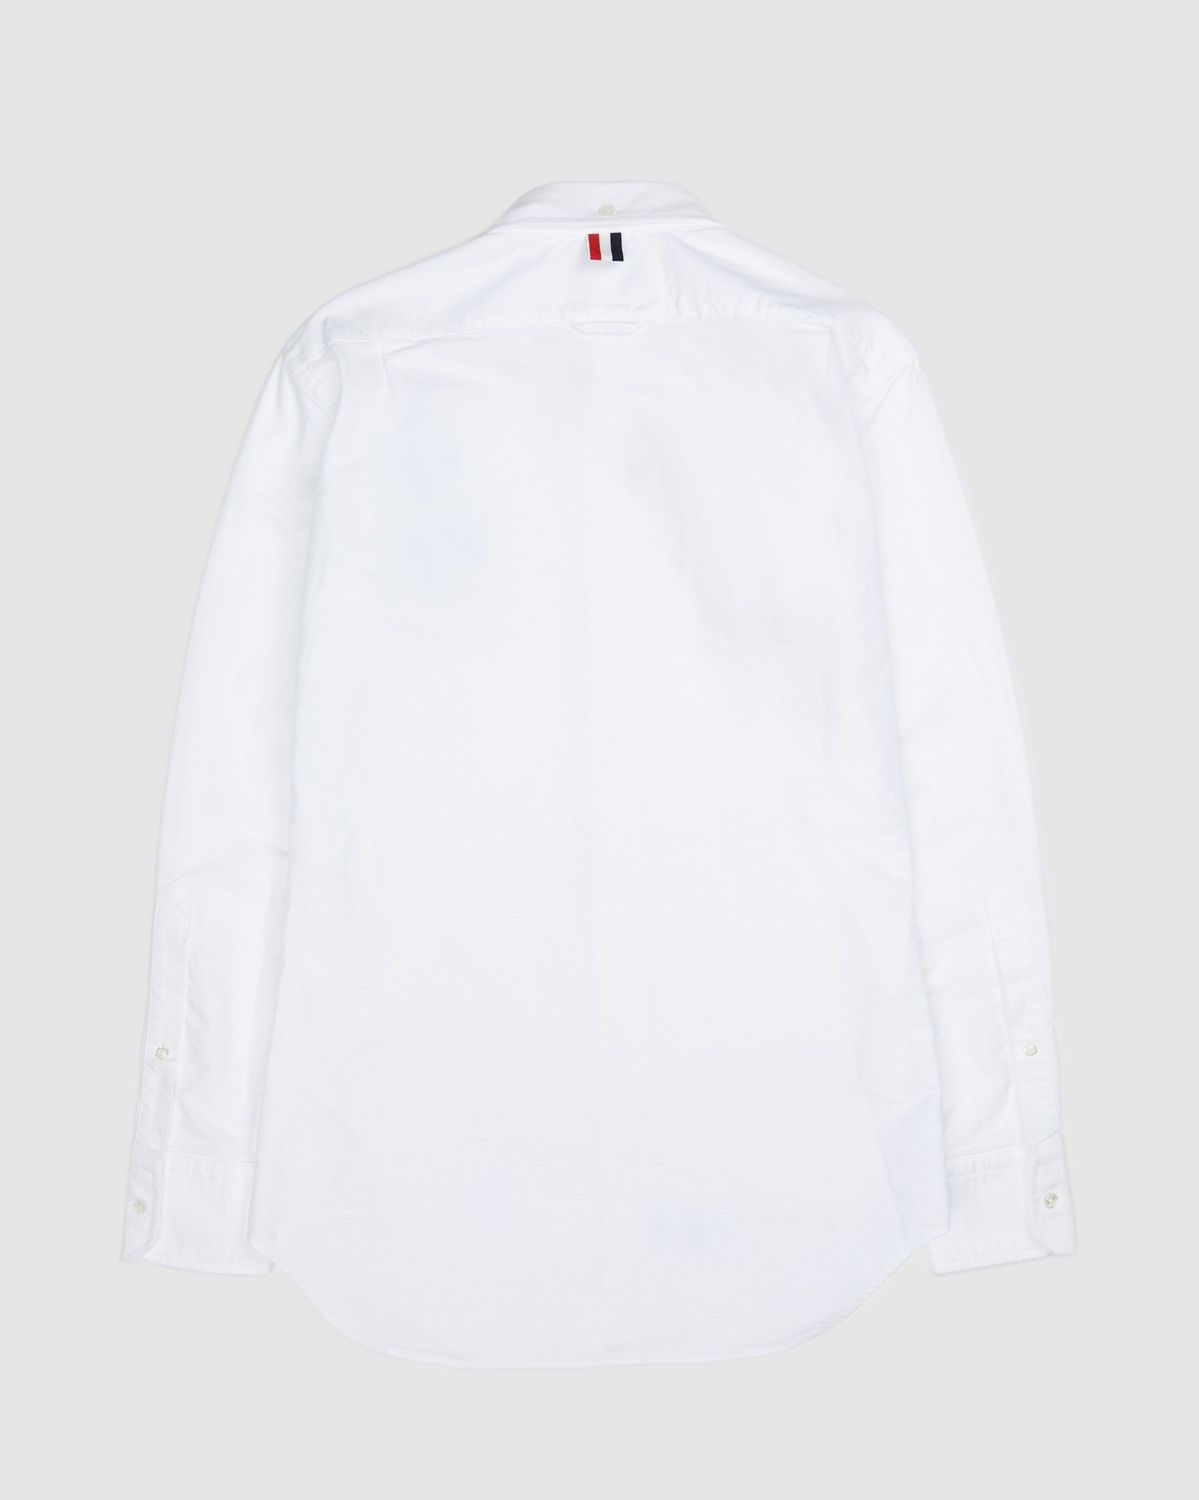 Colette Mon Amour x Thom Browne — White Peace Classic Shirt - Image 2